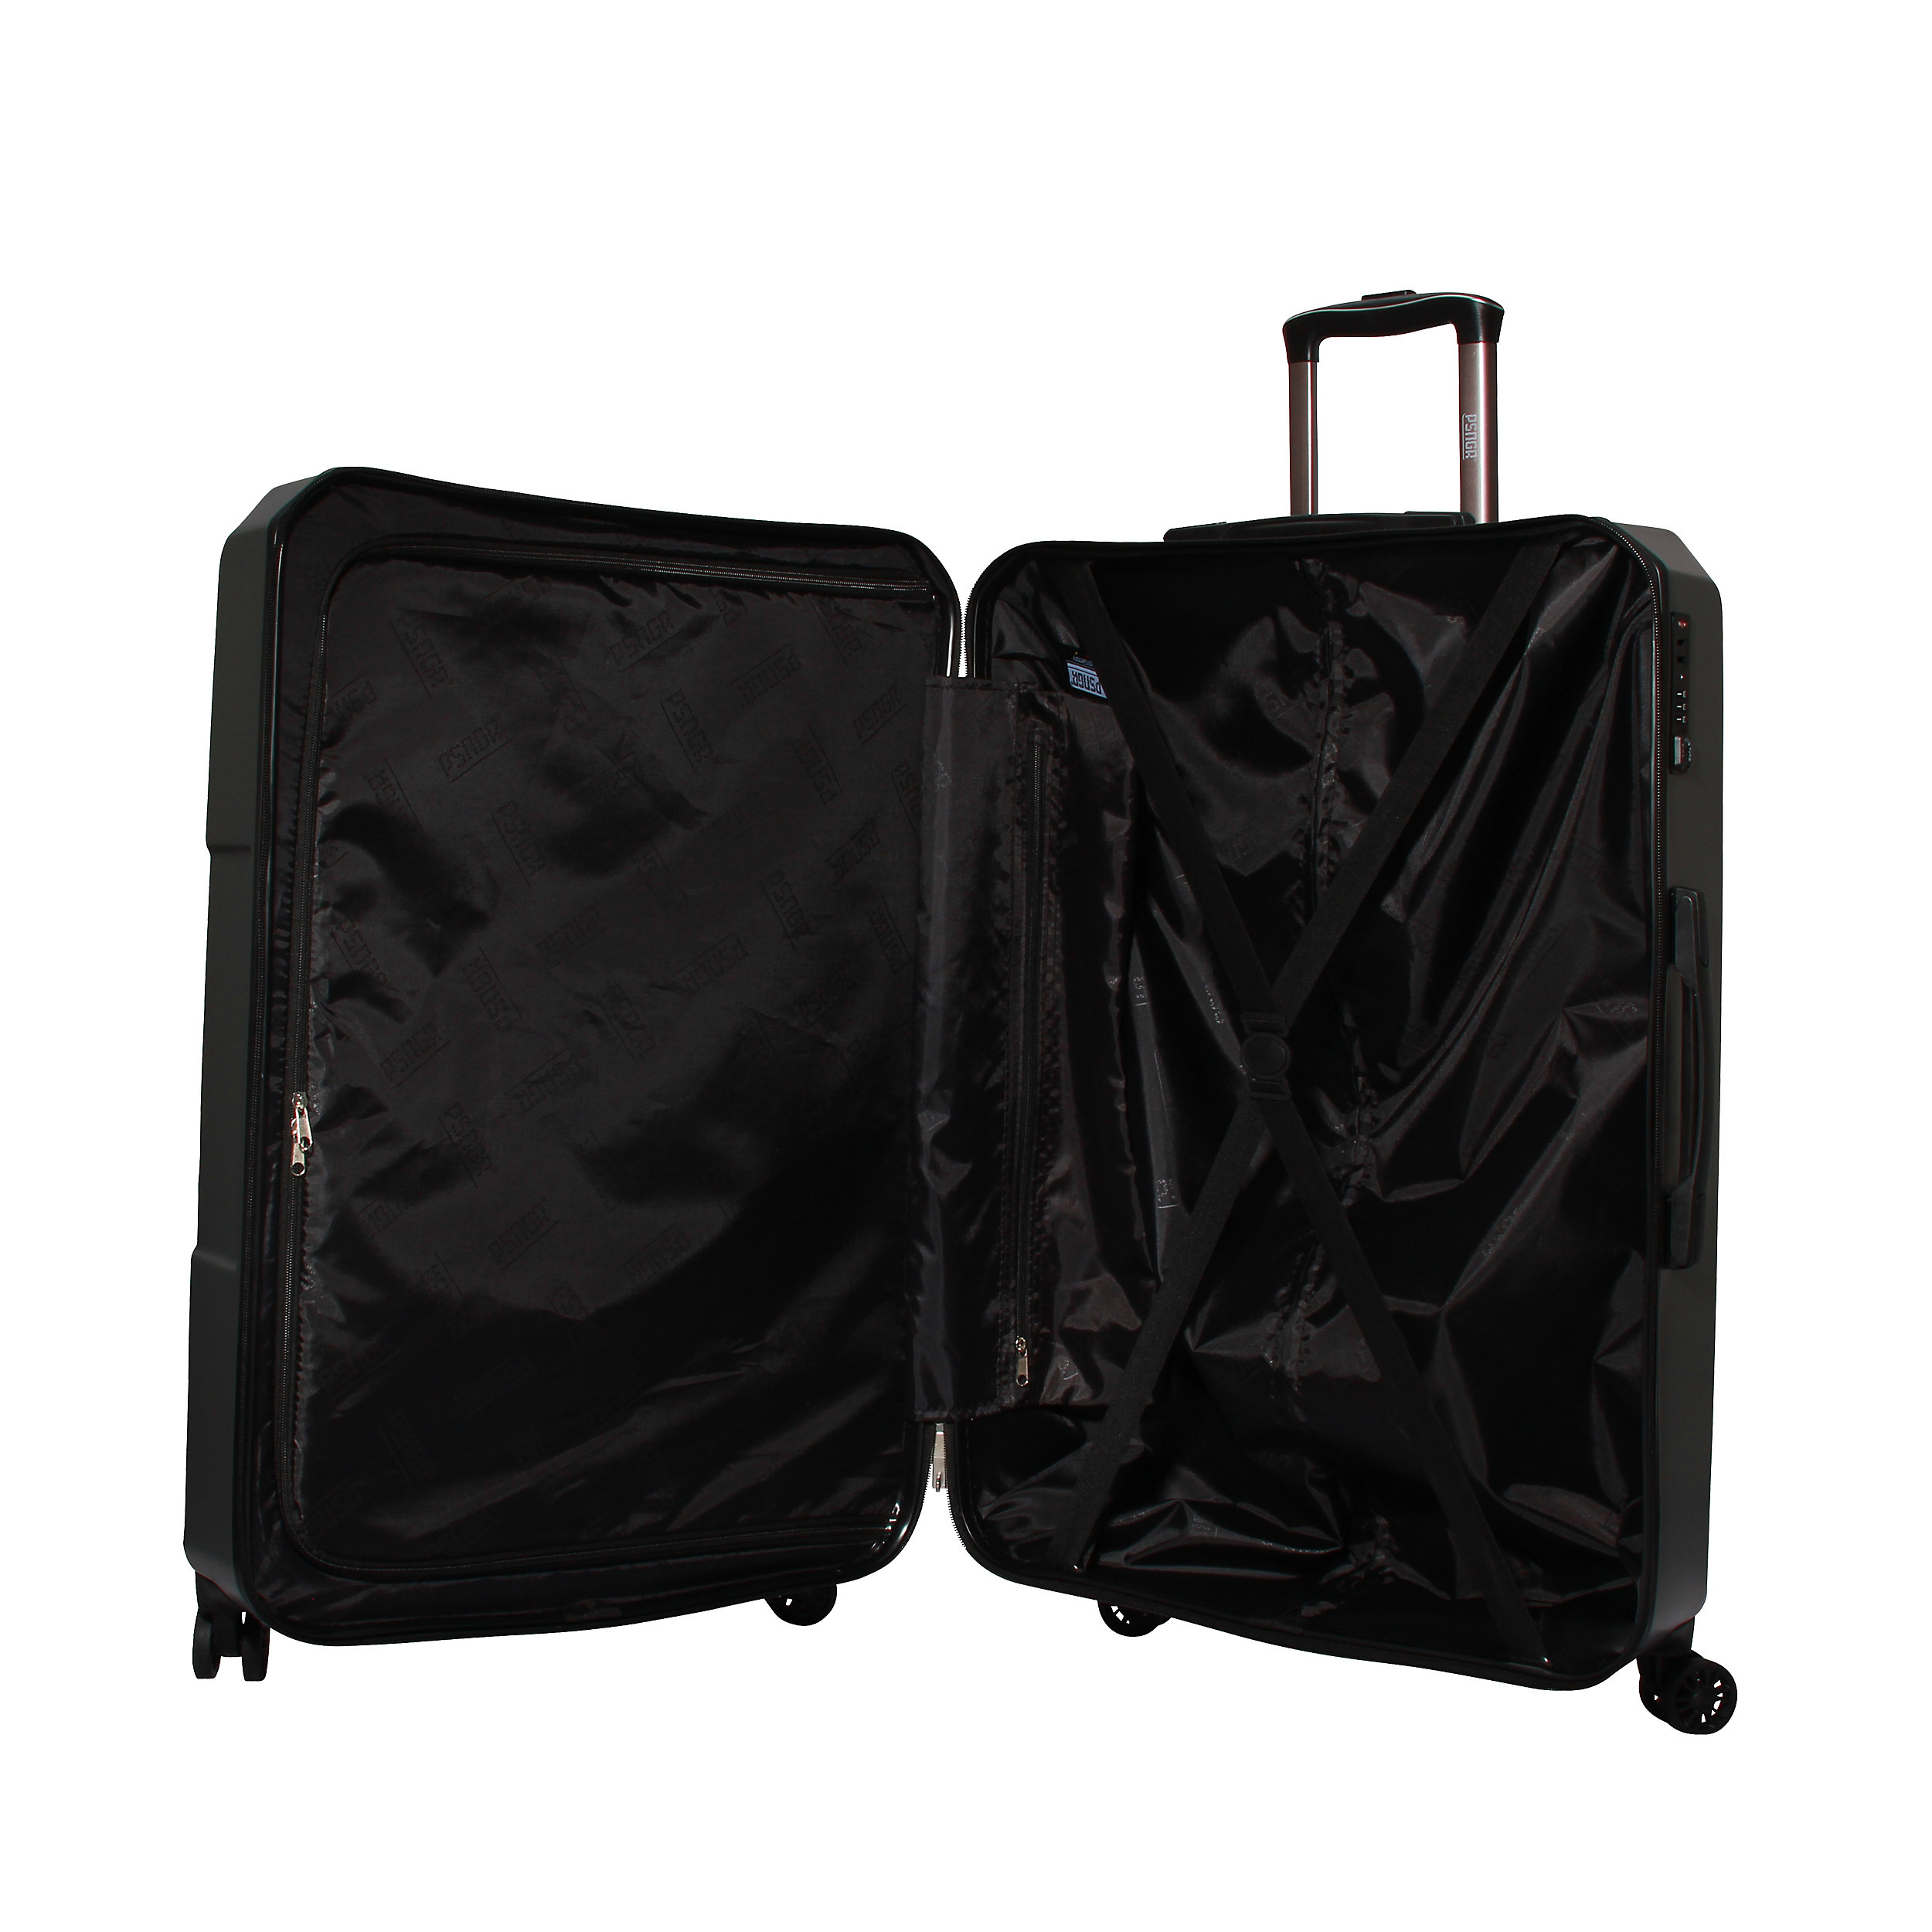 Trolley with 4 wheels with 4 wheels 69 cm EXP Spirit M 65 Liter